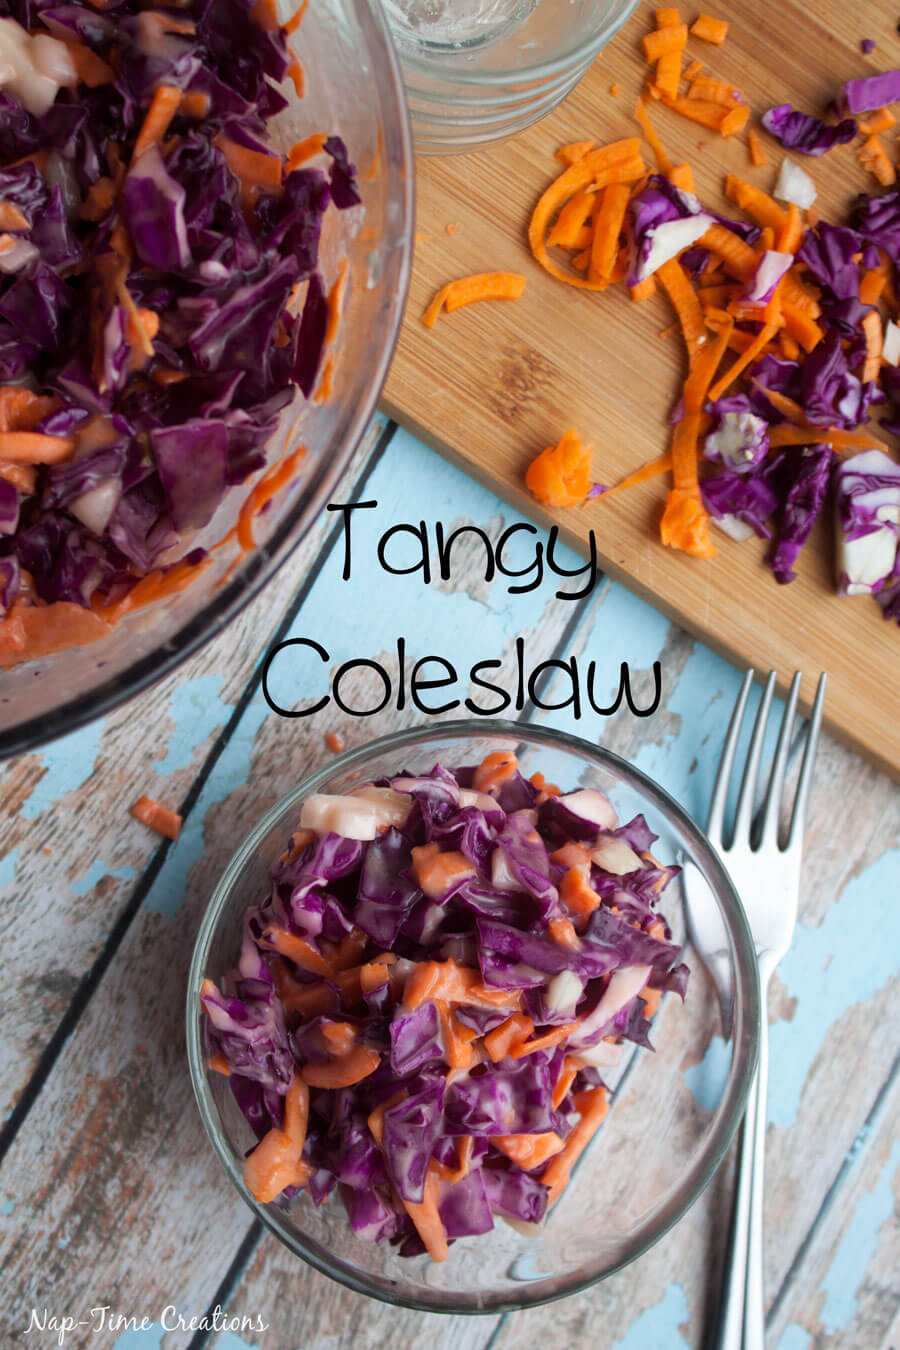 tangy-coleslaw-recipe-with-purple-cabbage-from-Nap-Time-Creations